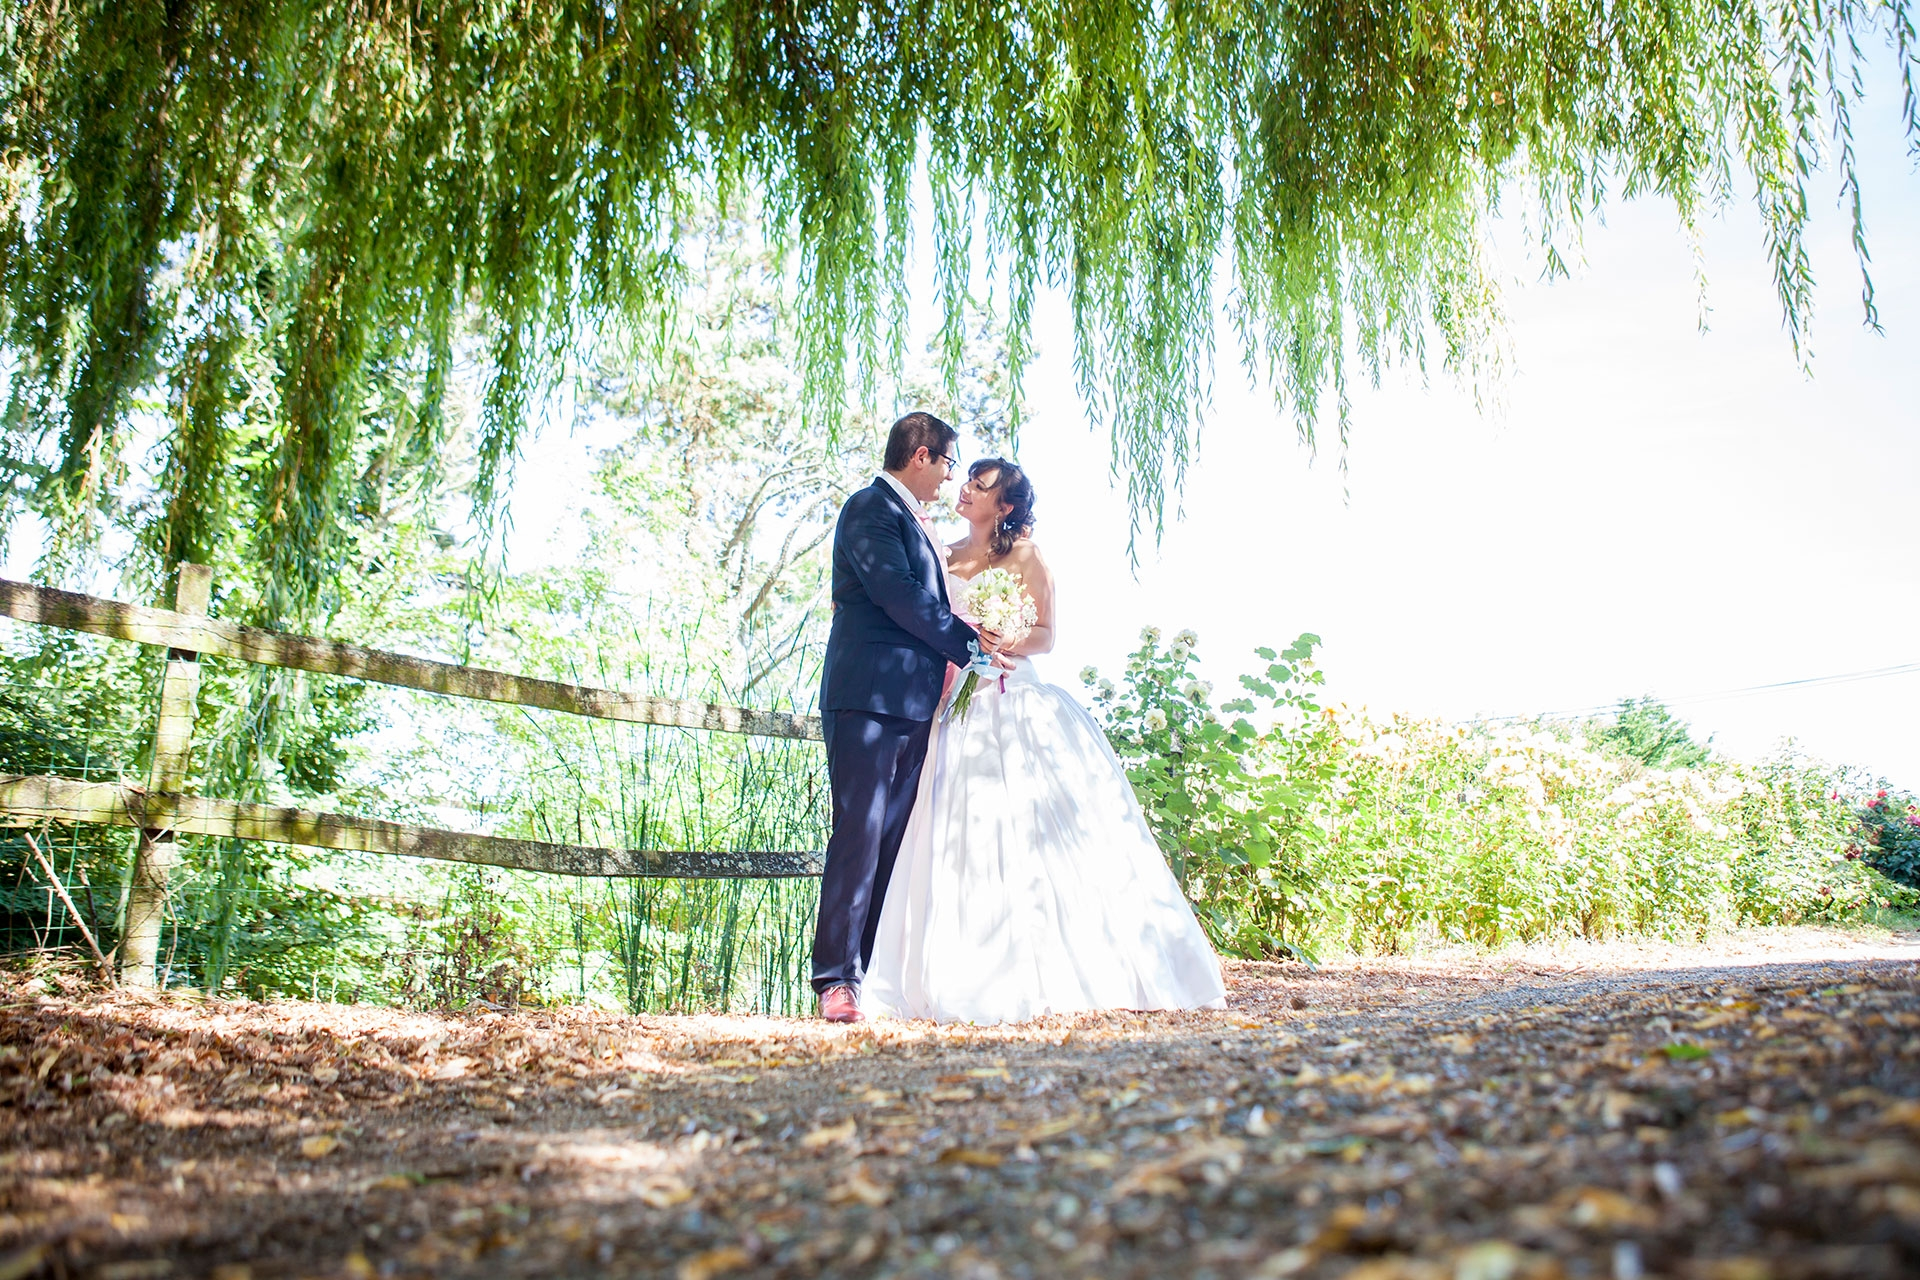 particuliers-evenements-mariages-oui-france&philippe-30